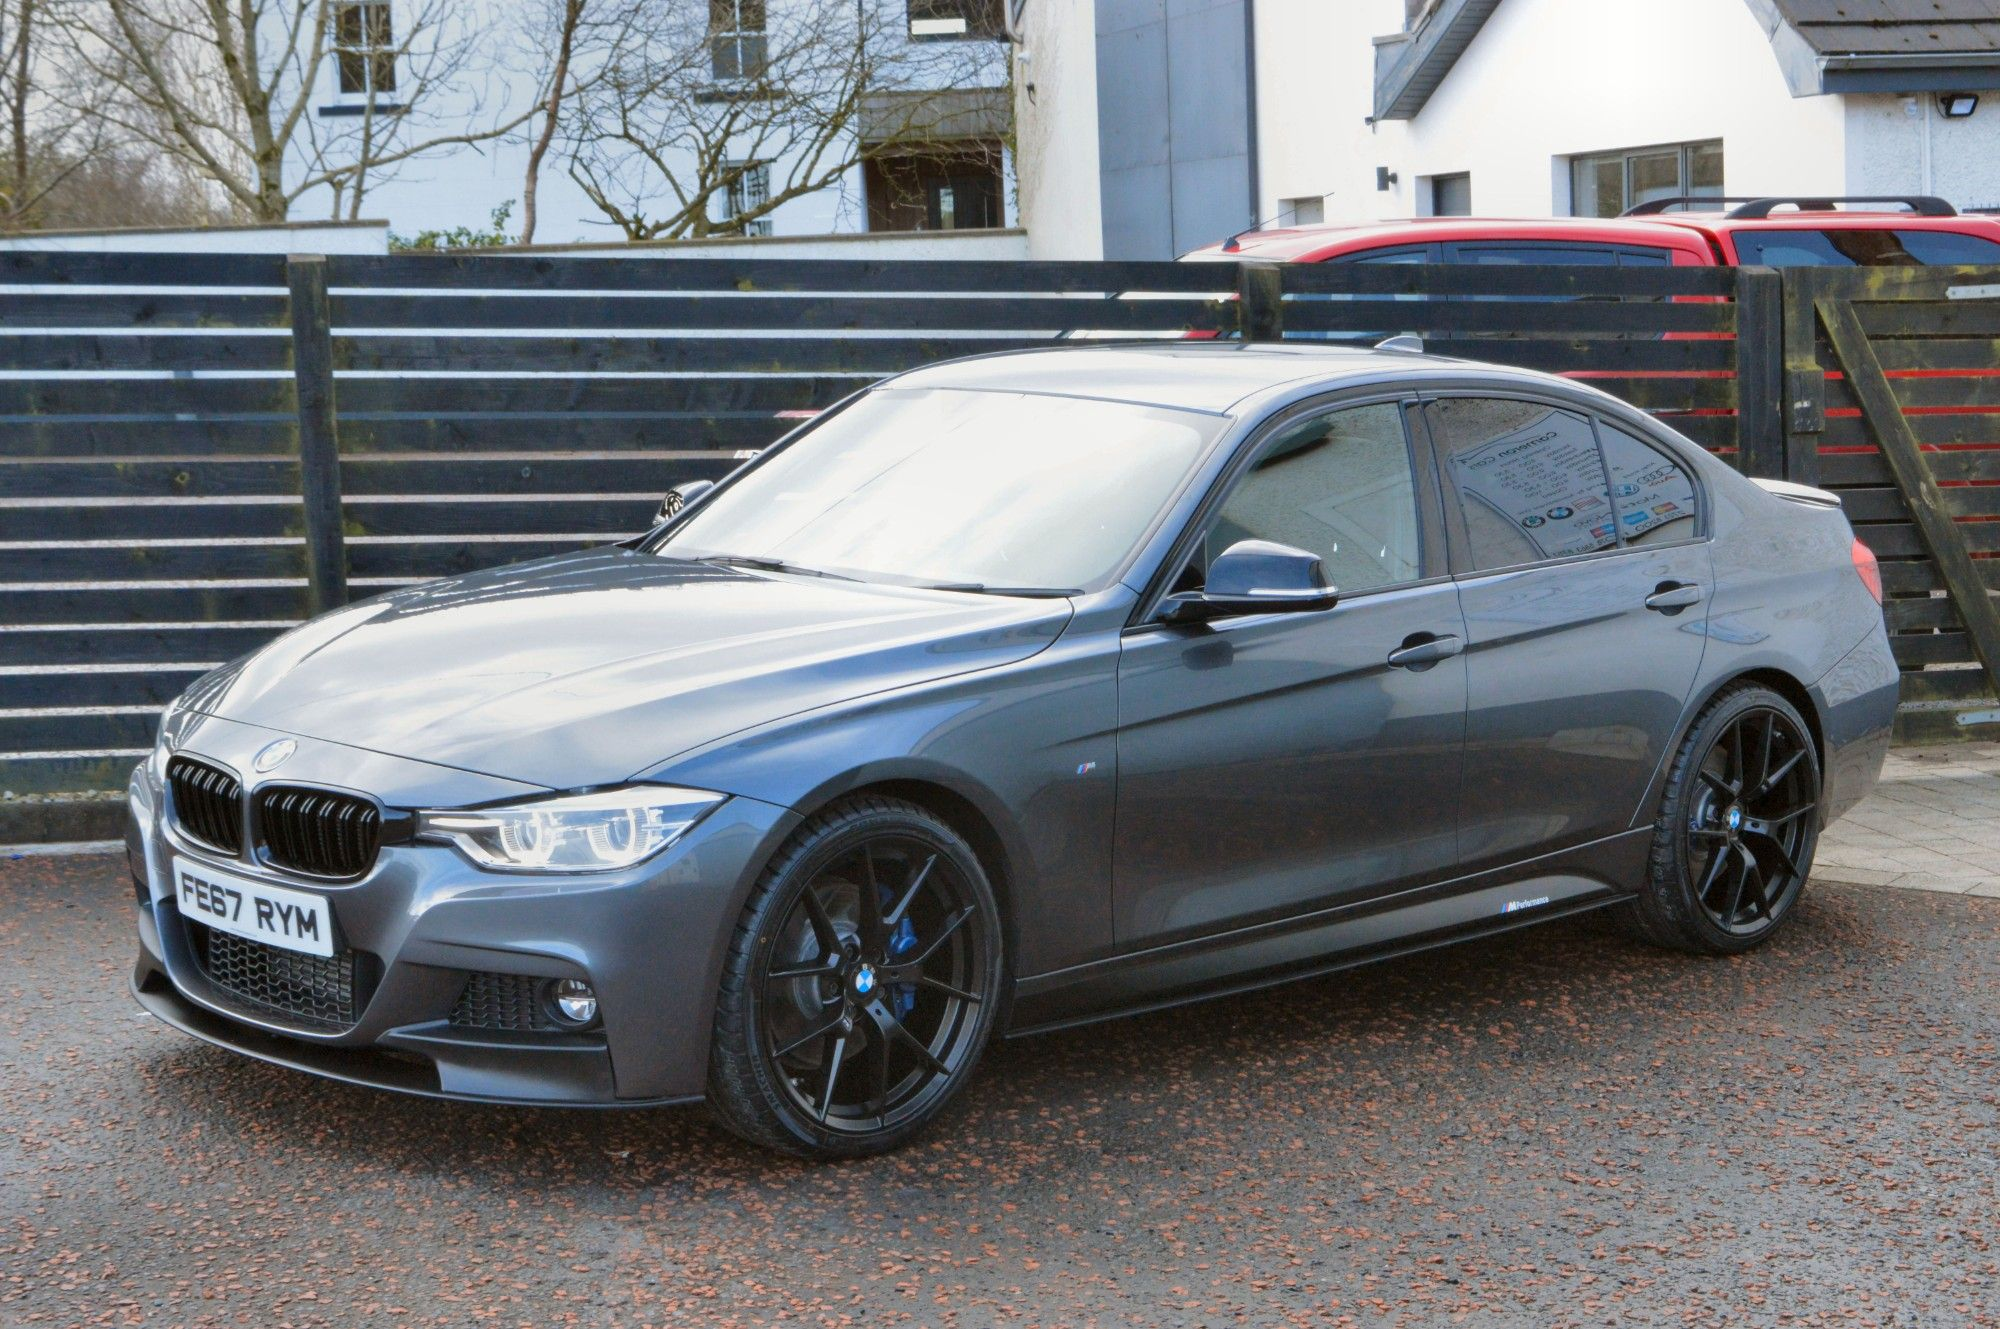 USED 2017 67 BMW 3 SERIES 2.0 320D M SPORT 4d 188 BHP 6 MONTHS RAC WARRANTY FREE + 12 MONTHS ROAD SIDE RECOVERY!